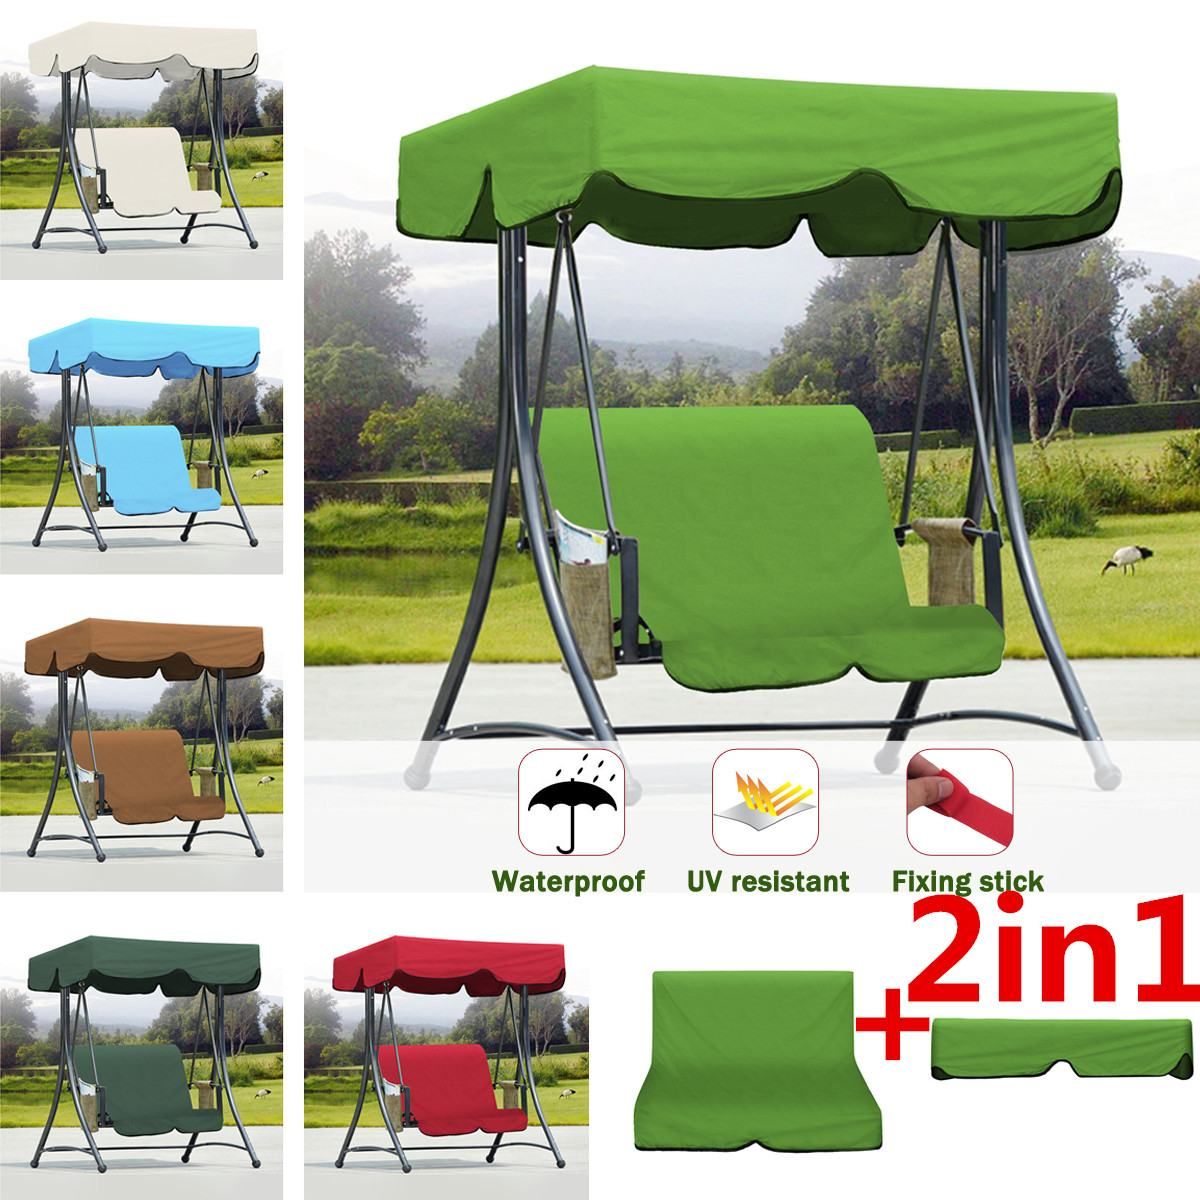 2Pcs Waterproof UV Resistant Swing Hammock Canopy+Chair Cushion Summer Outdoor Indoor Garden Courtyard Tent Swing Top Cover